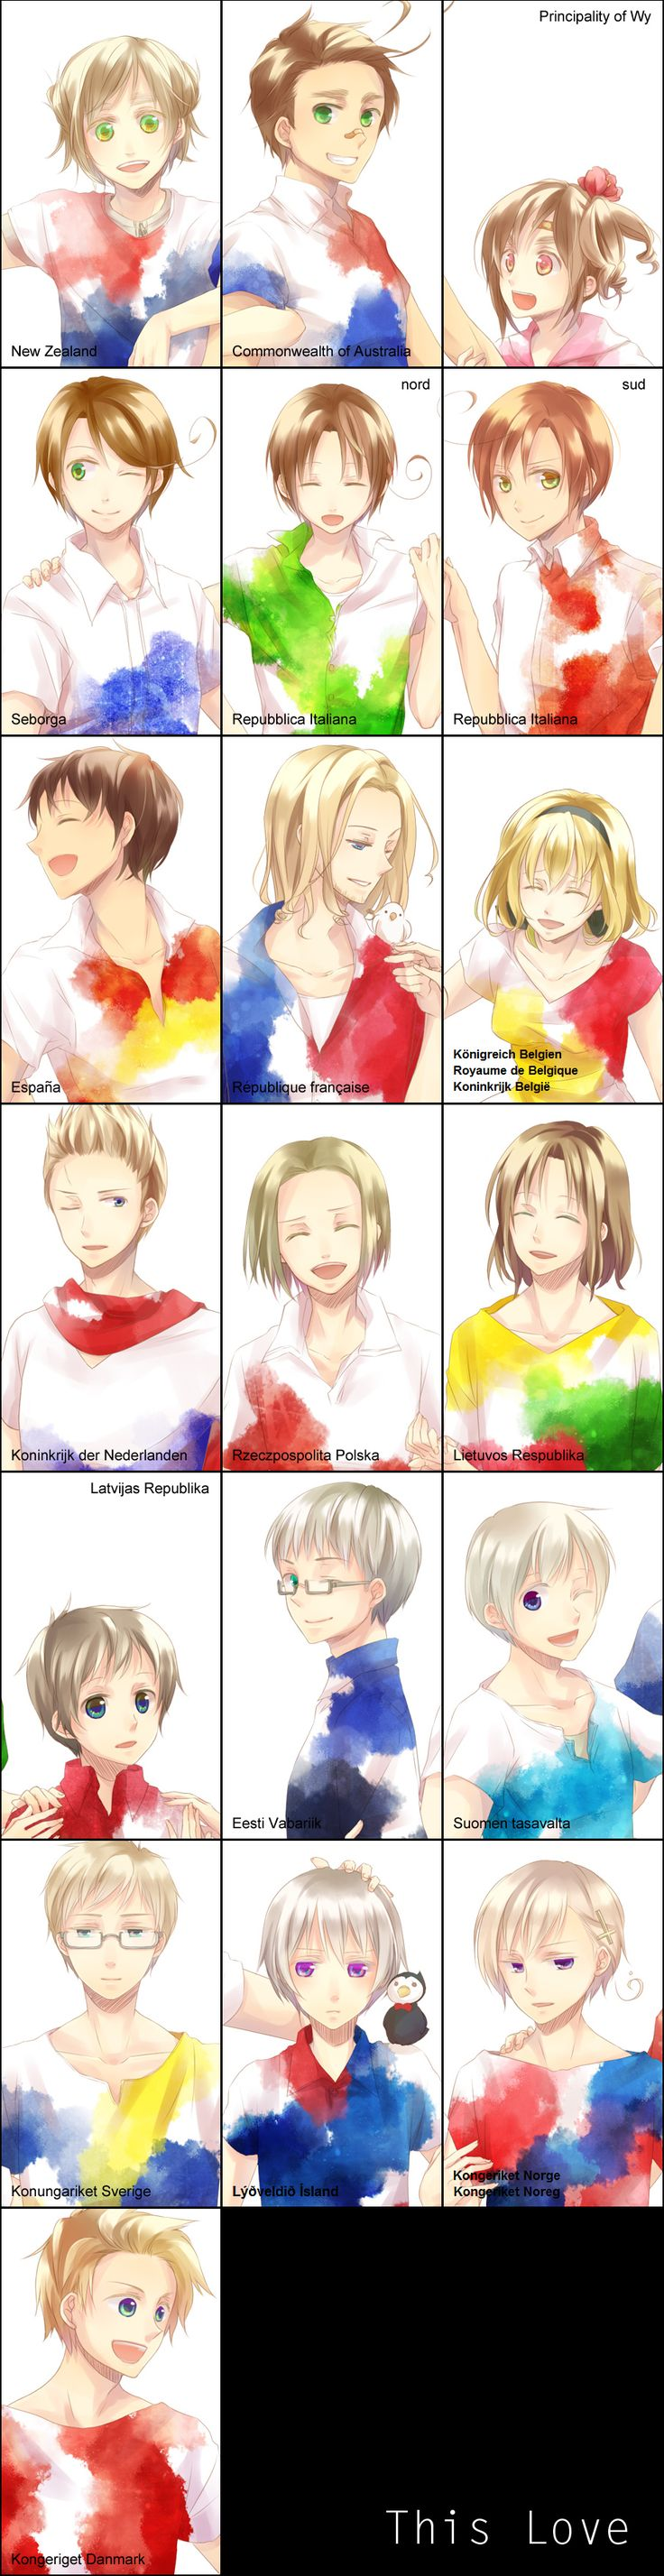 """""""Hetalia characters with their """"official"""" names in their respective official languages: how many can you figure out? - Art by Nikawa"""""""